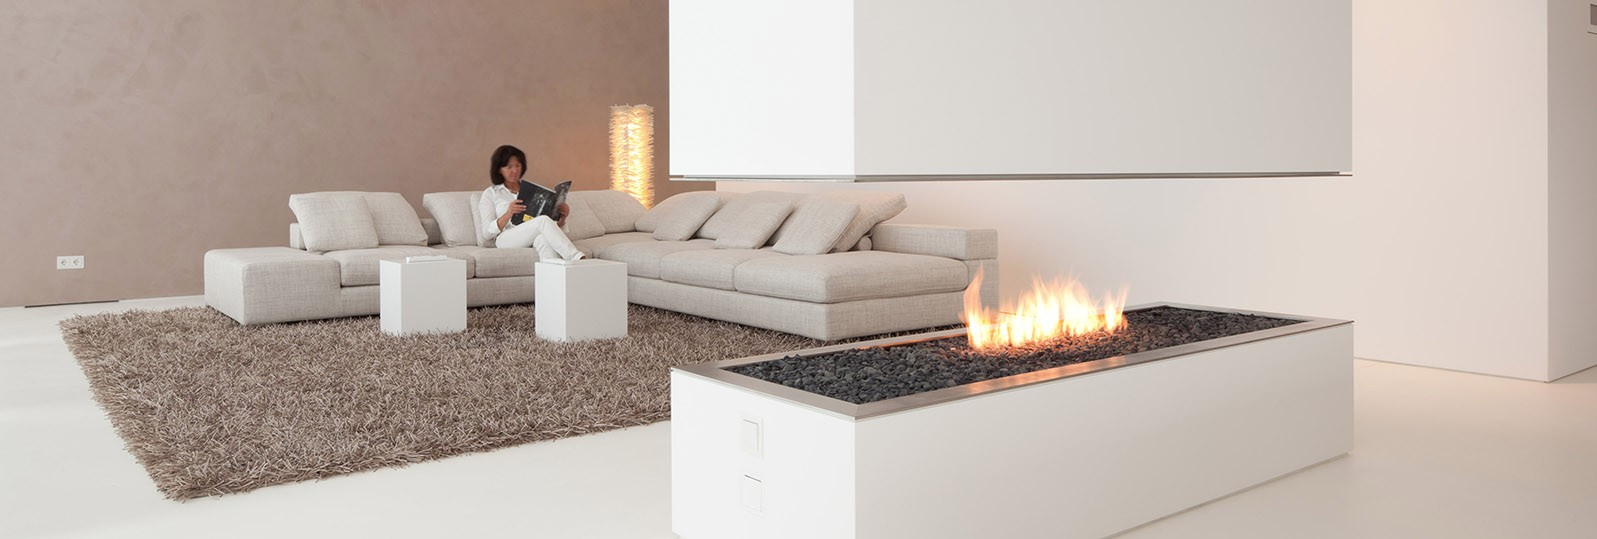 hi-macs white fire surround and coffee tables furniture